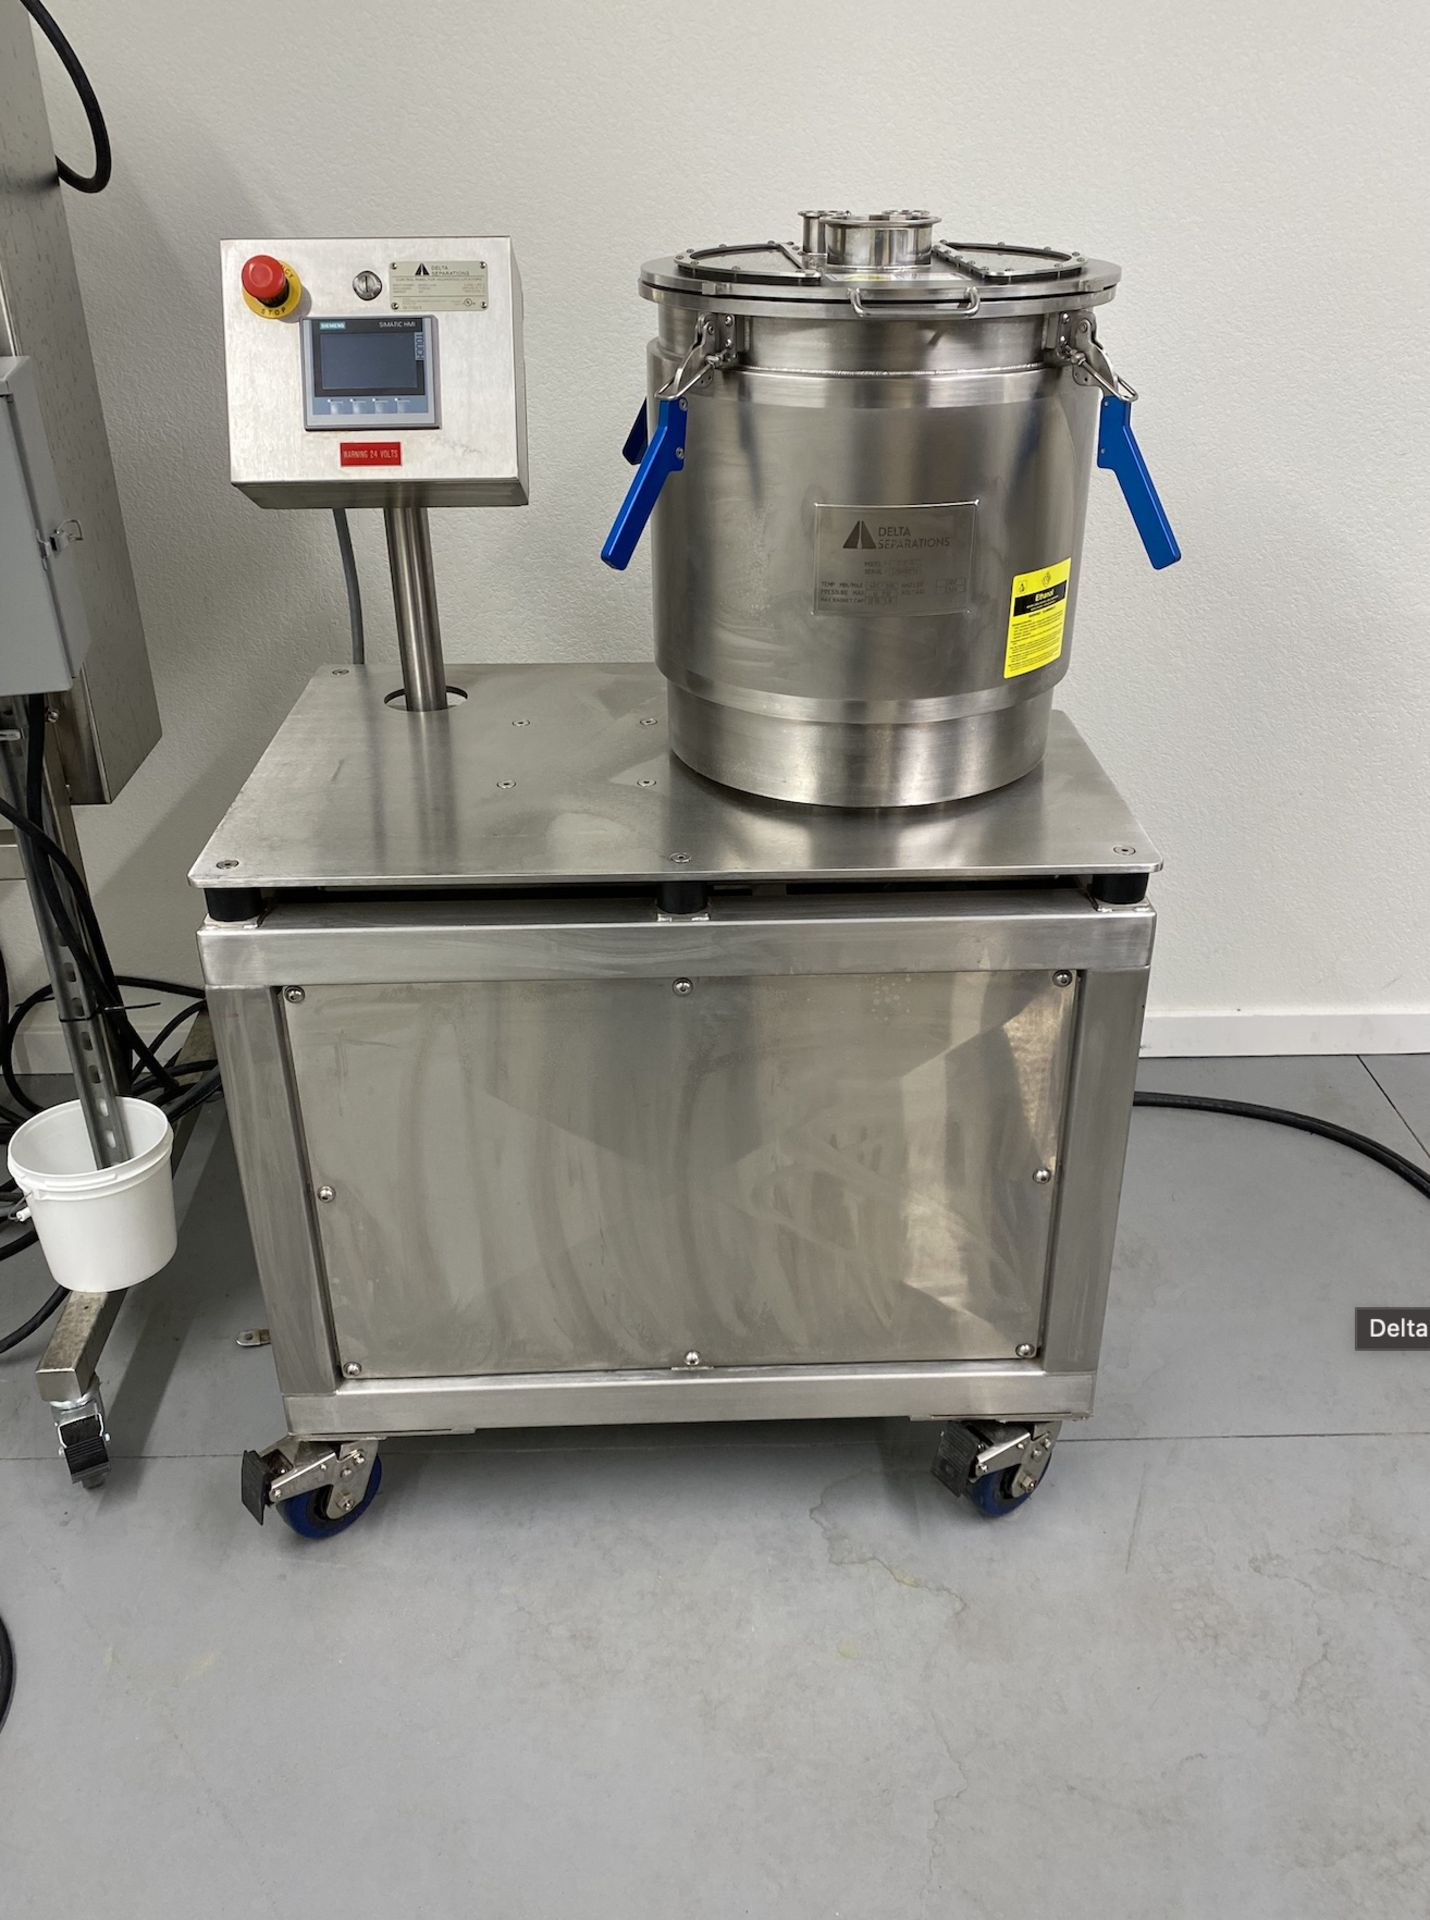 Used- Delta Separations CUP-15 Ethanol Alcohol Extraction System, Capacity: 8-14 lbs per Batch